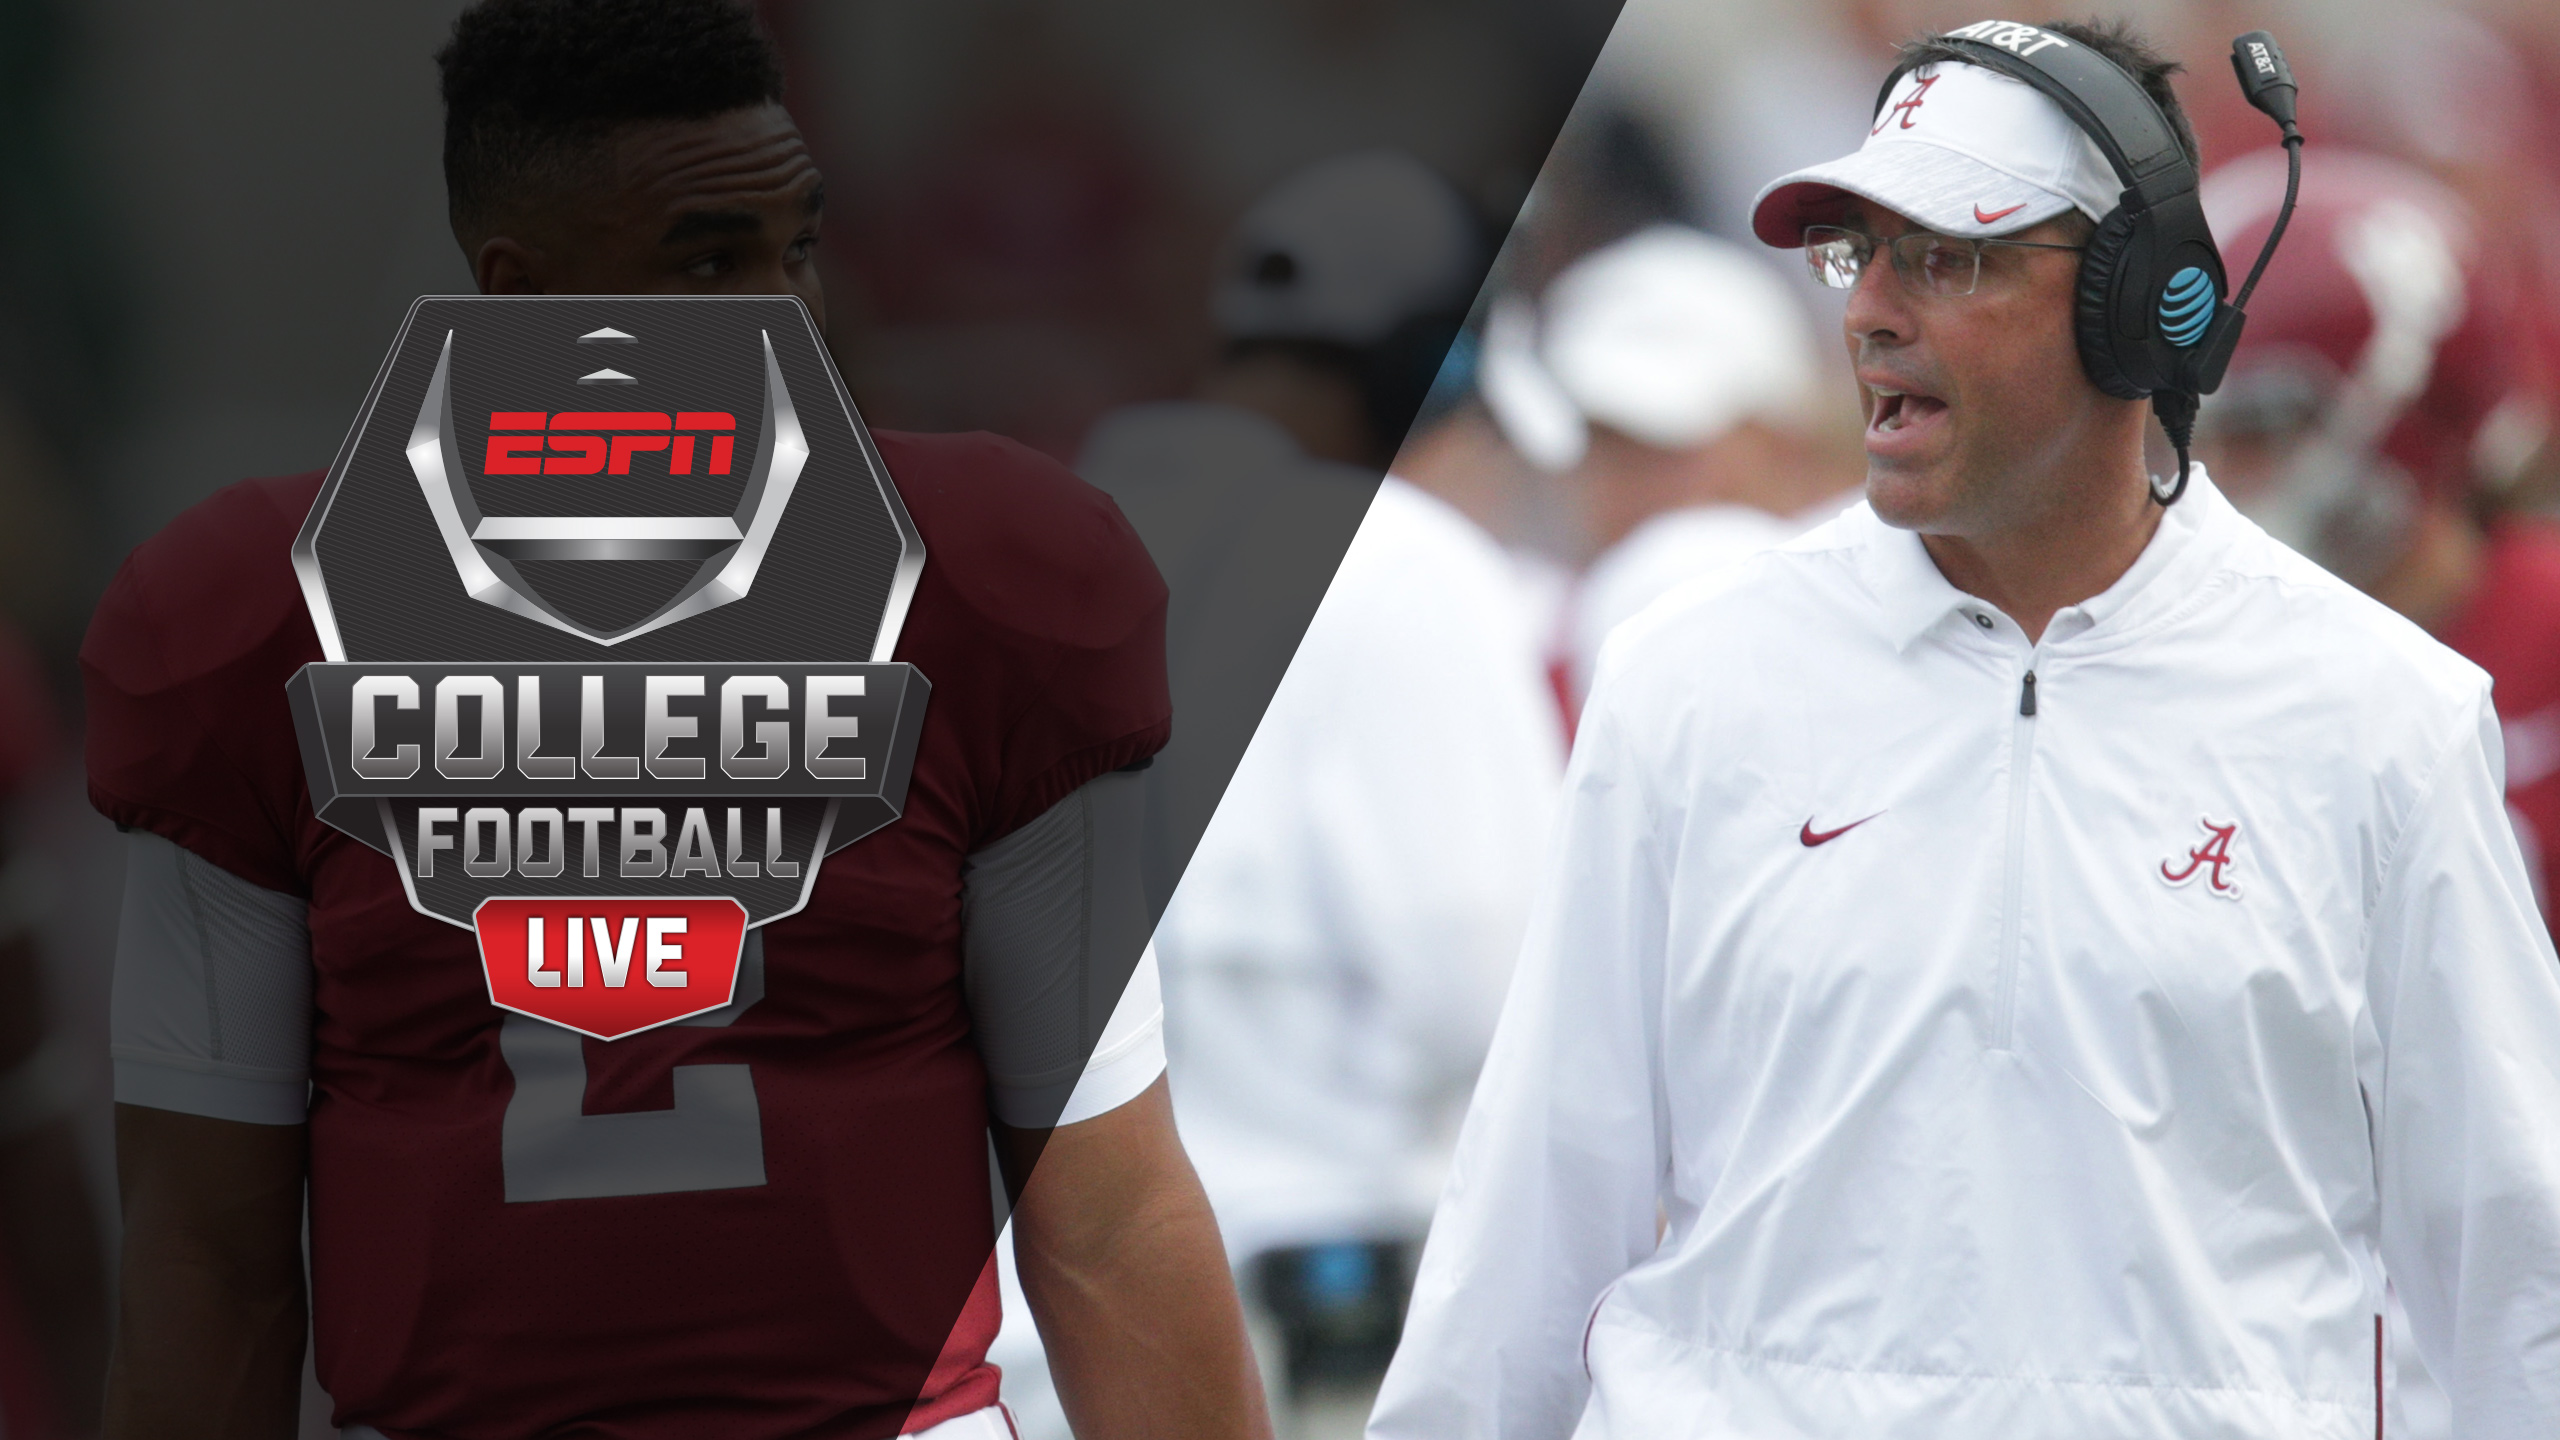 Wed, 12/12 - College Football Live